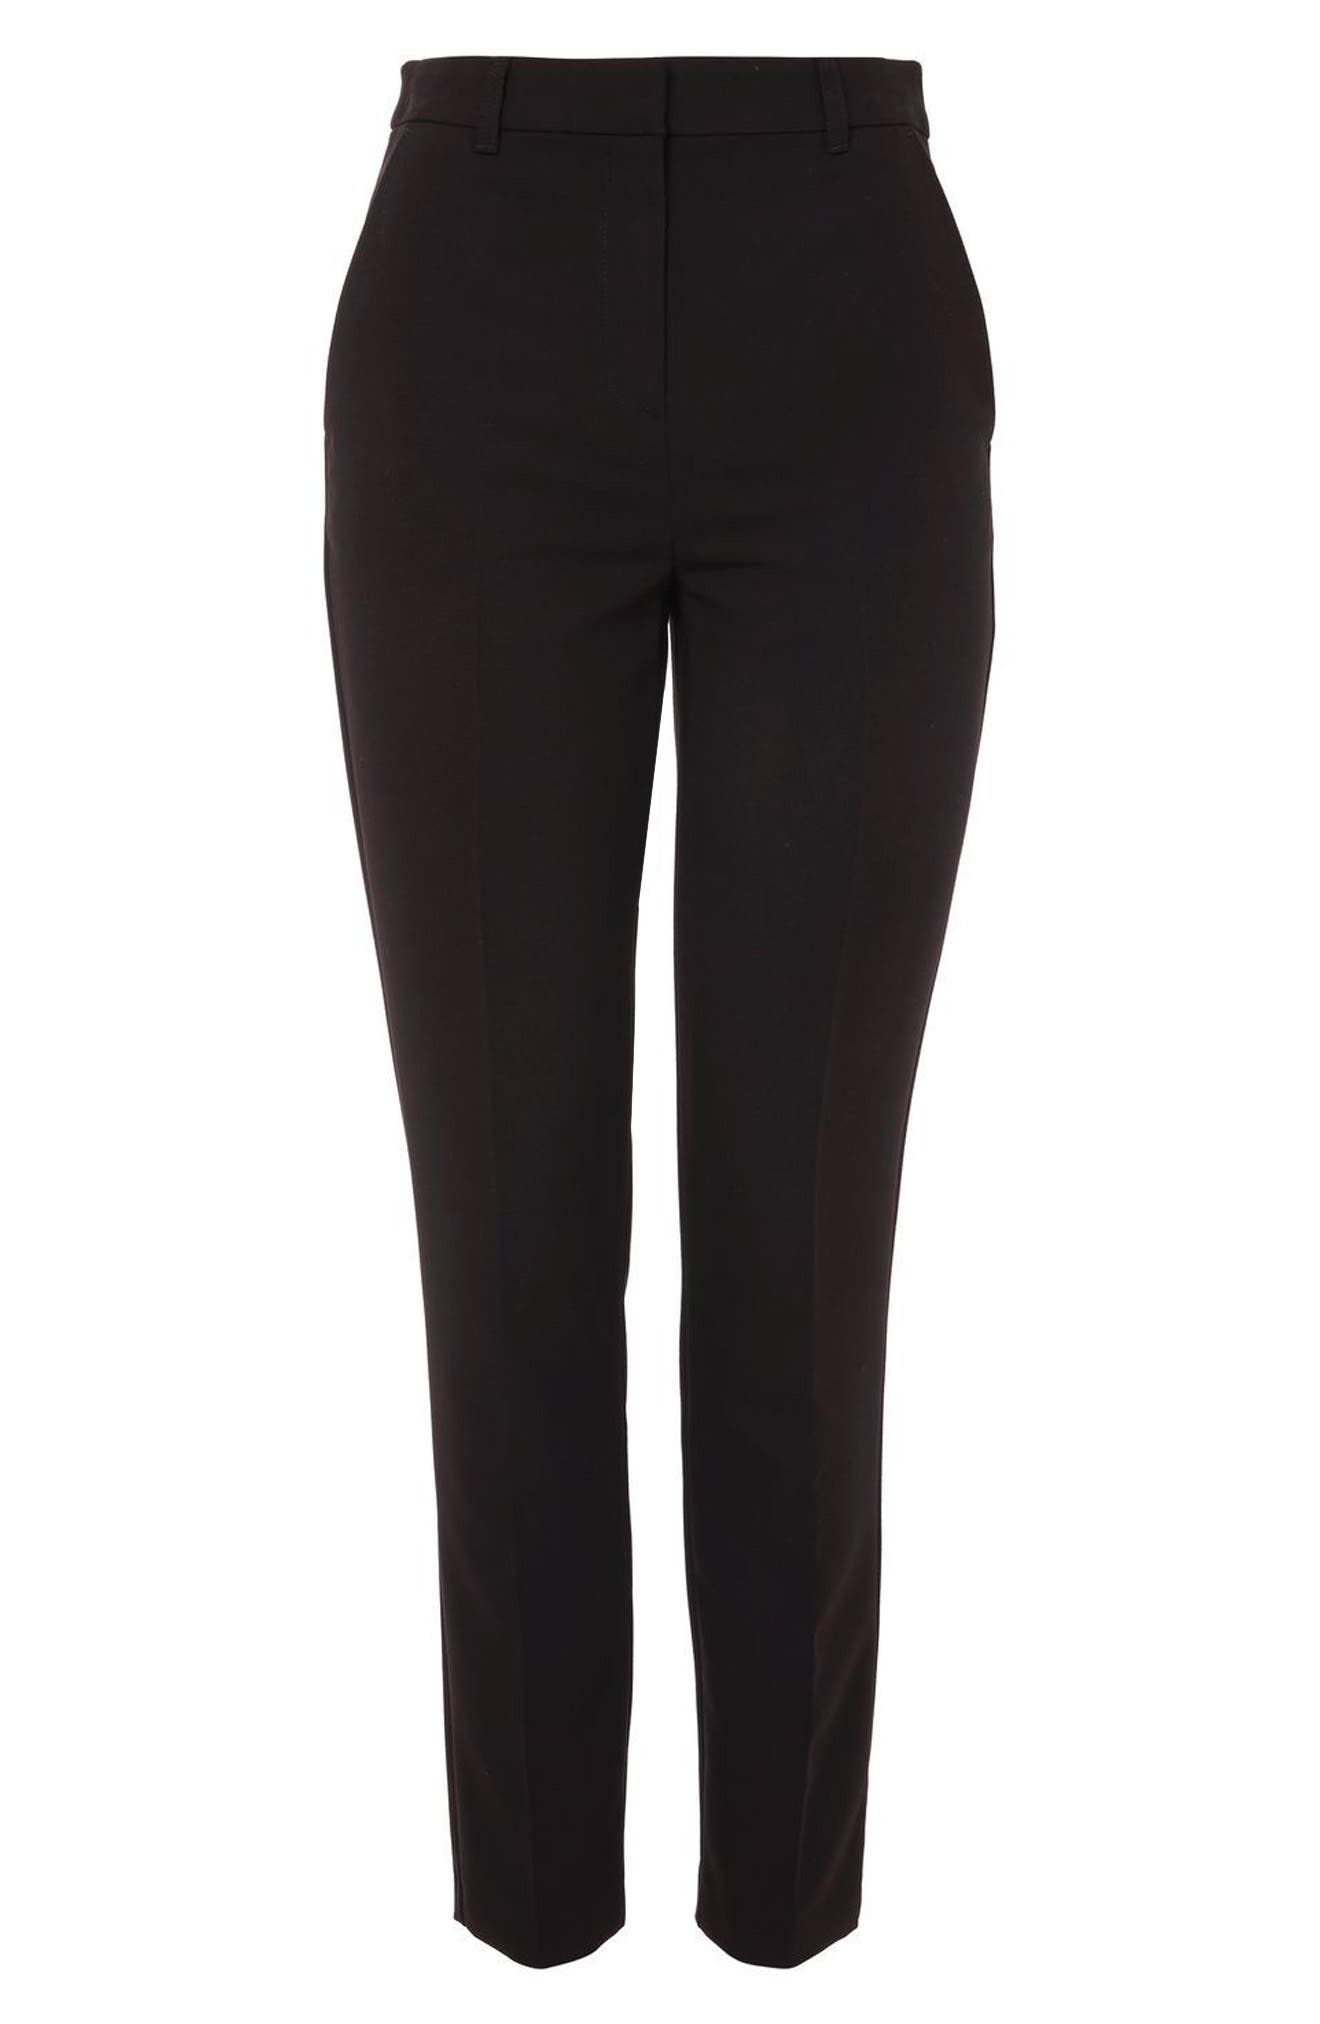 Alternate Image 4  - Topshop High Waist Cigarette Trousers